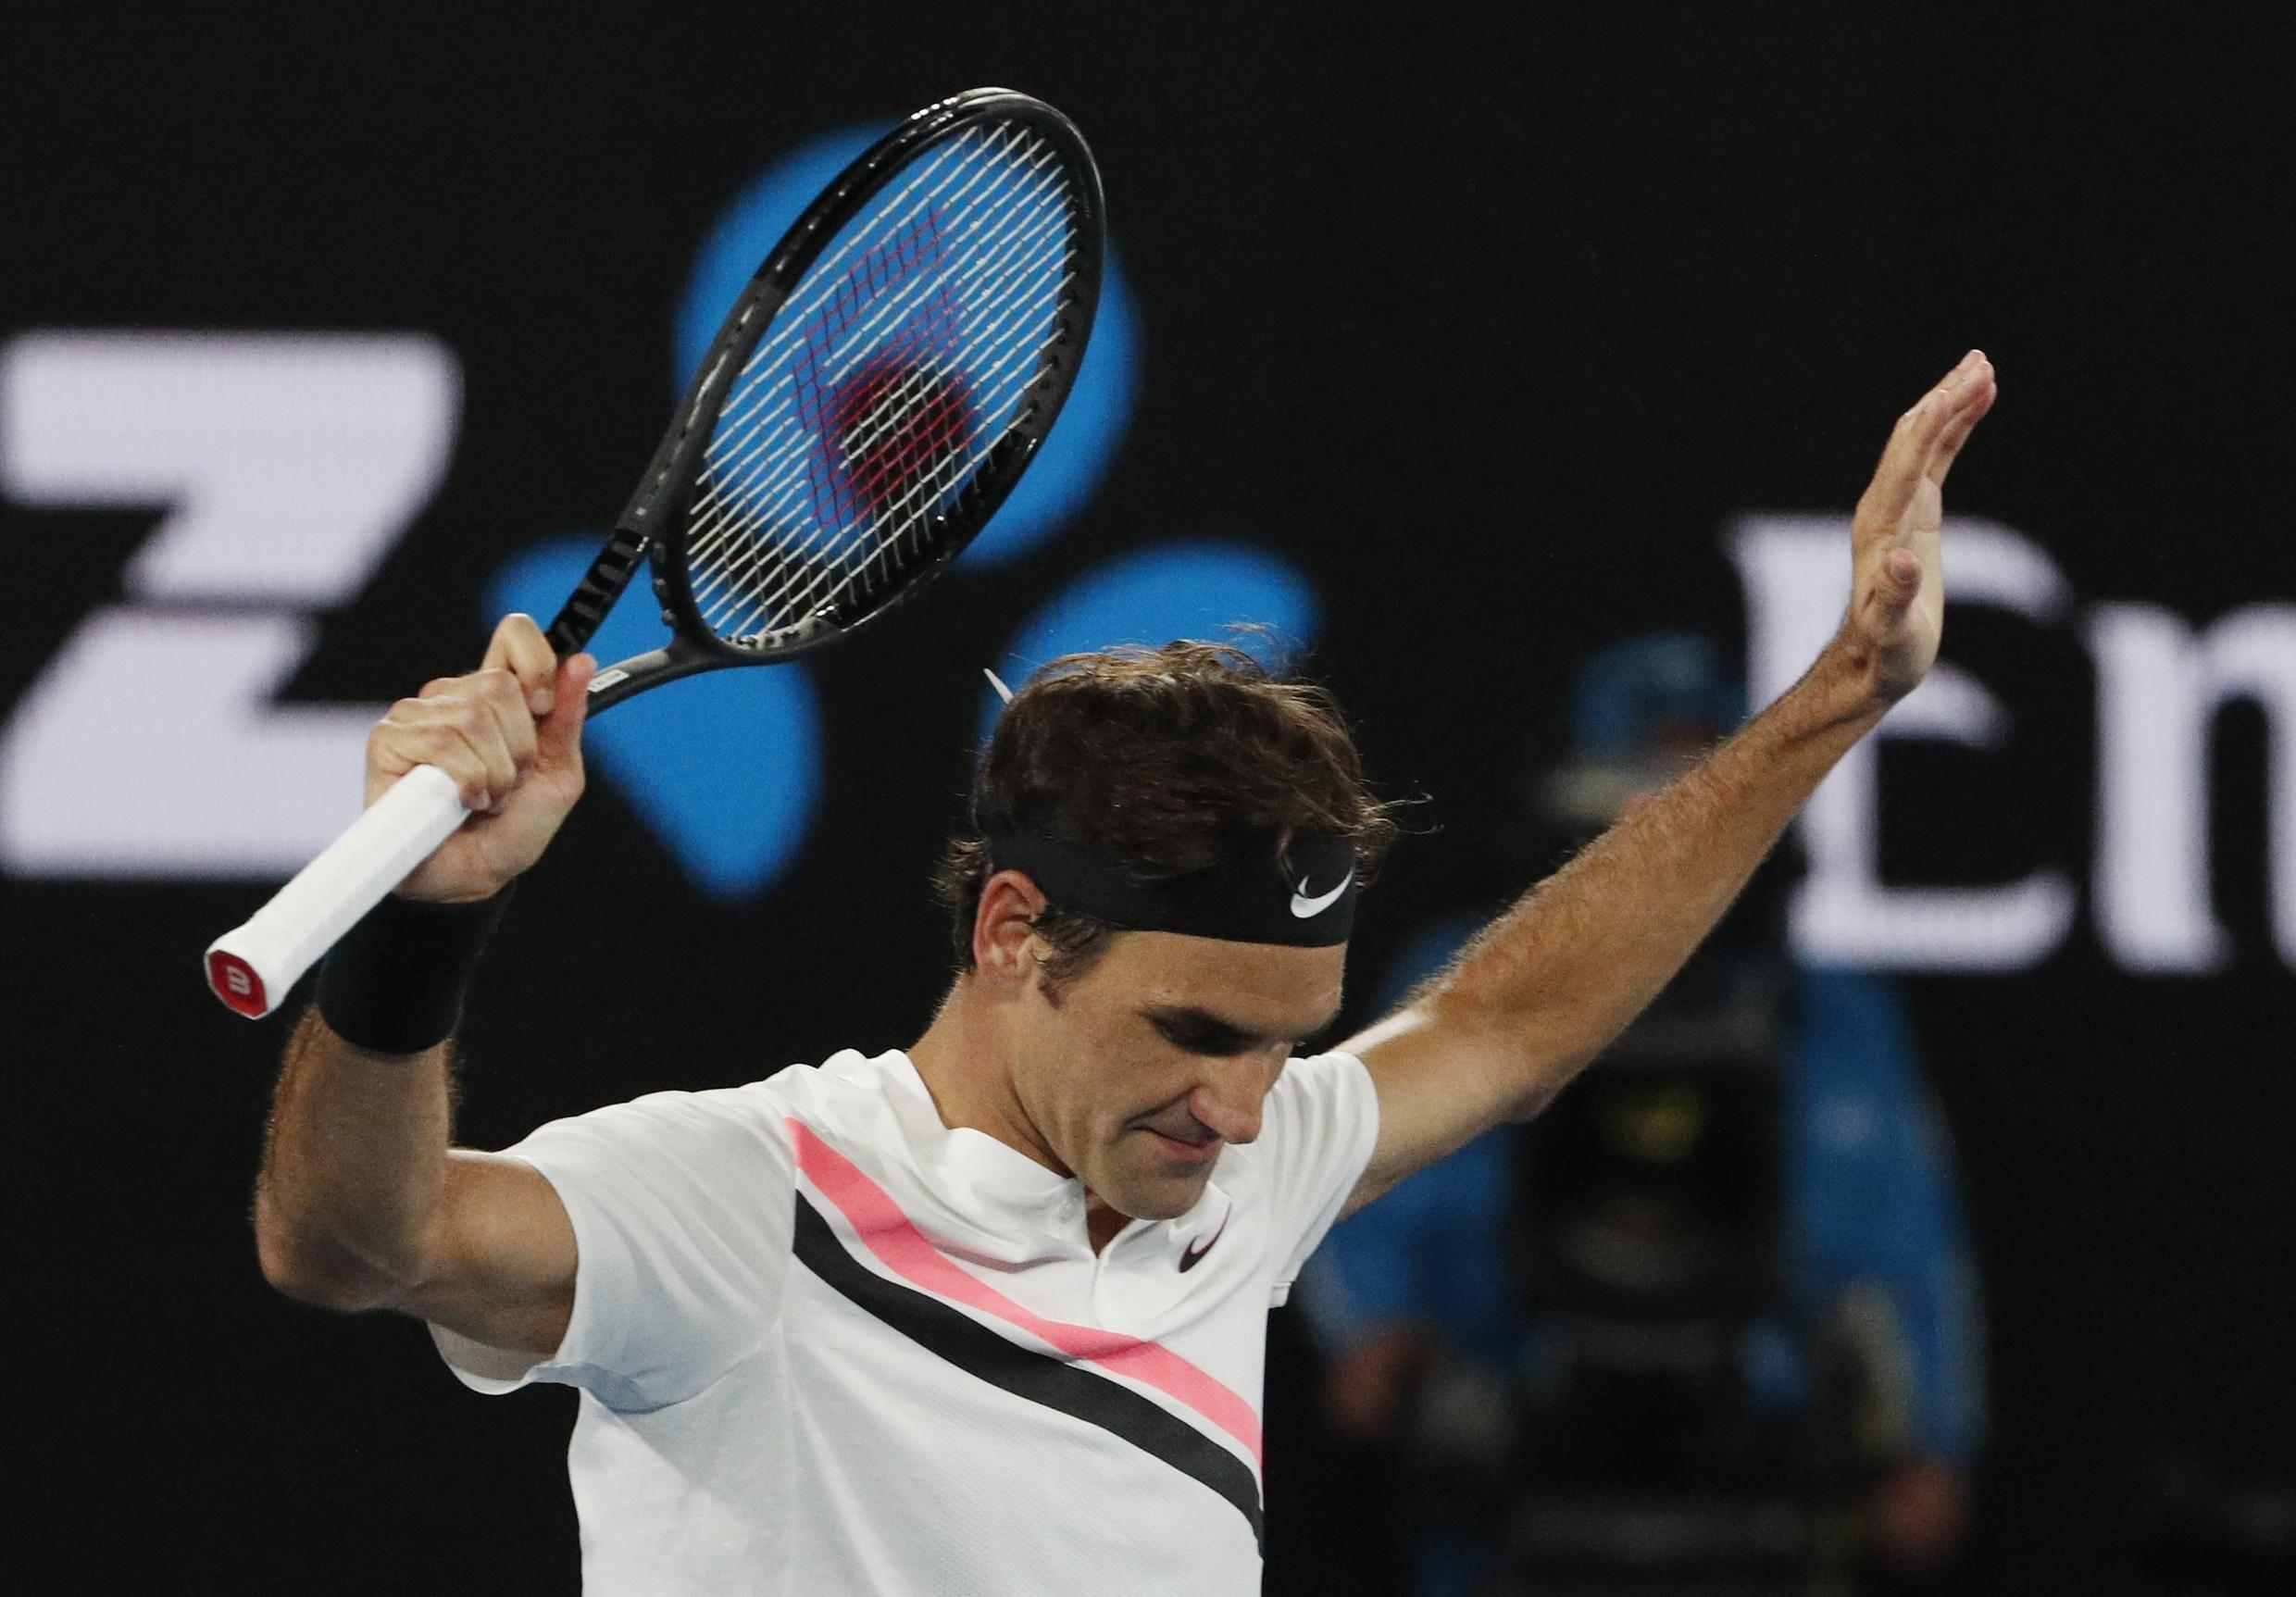 Roger Federer won the 2017 Australian Open after beating Rafael Nadal in the final.